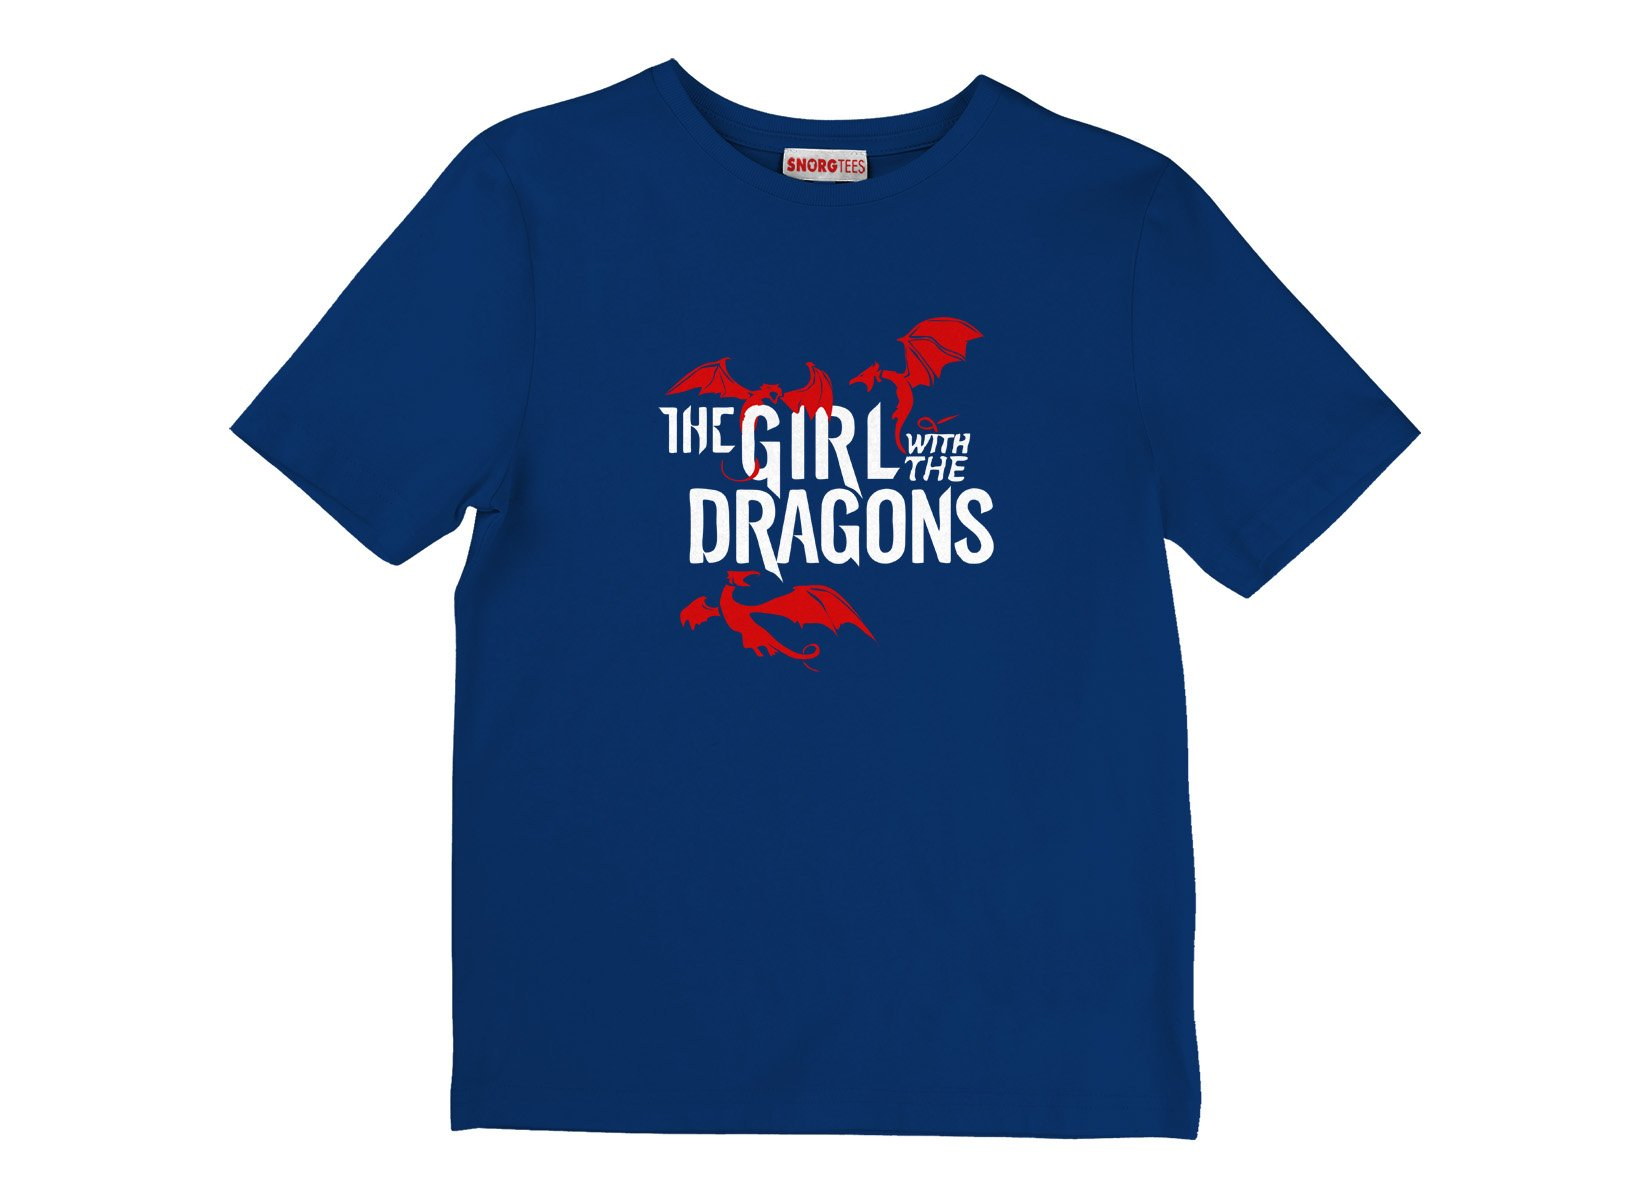 The Girl With The Dragons on Kids T-Shirt